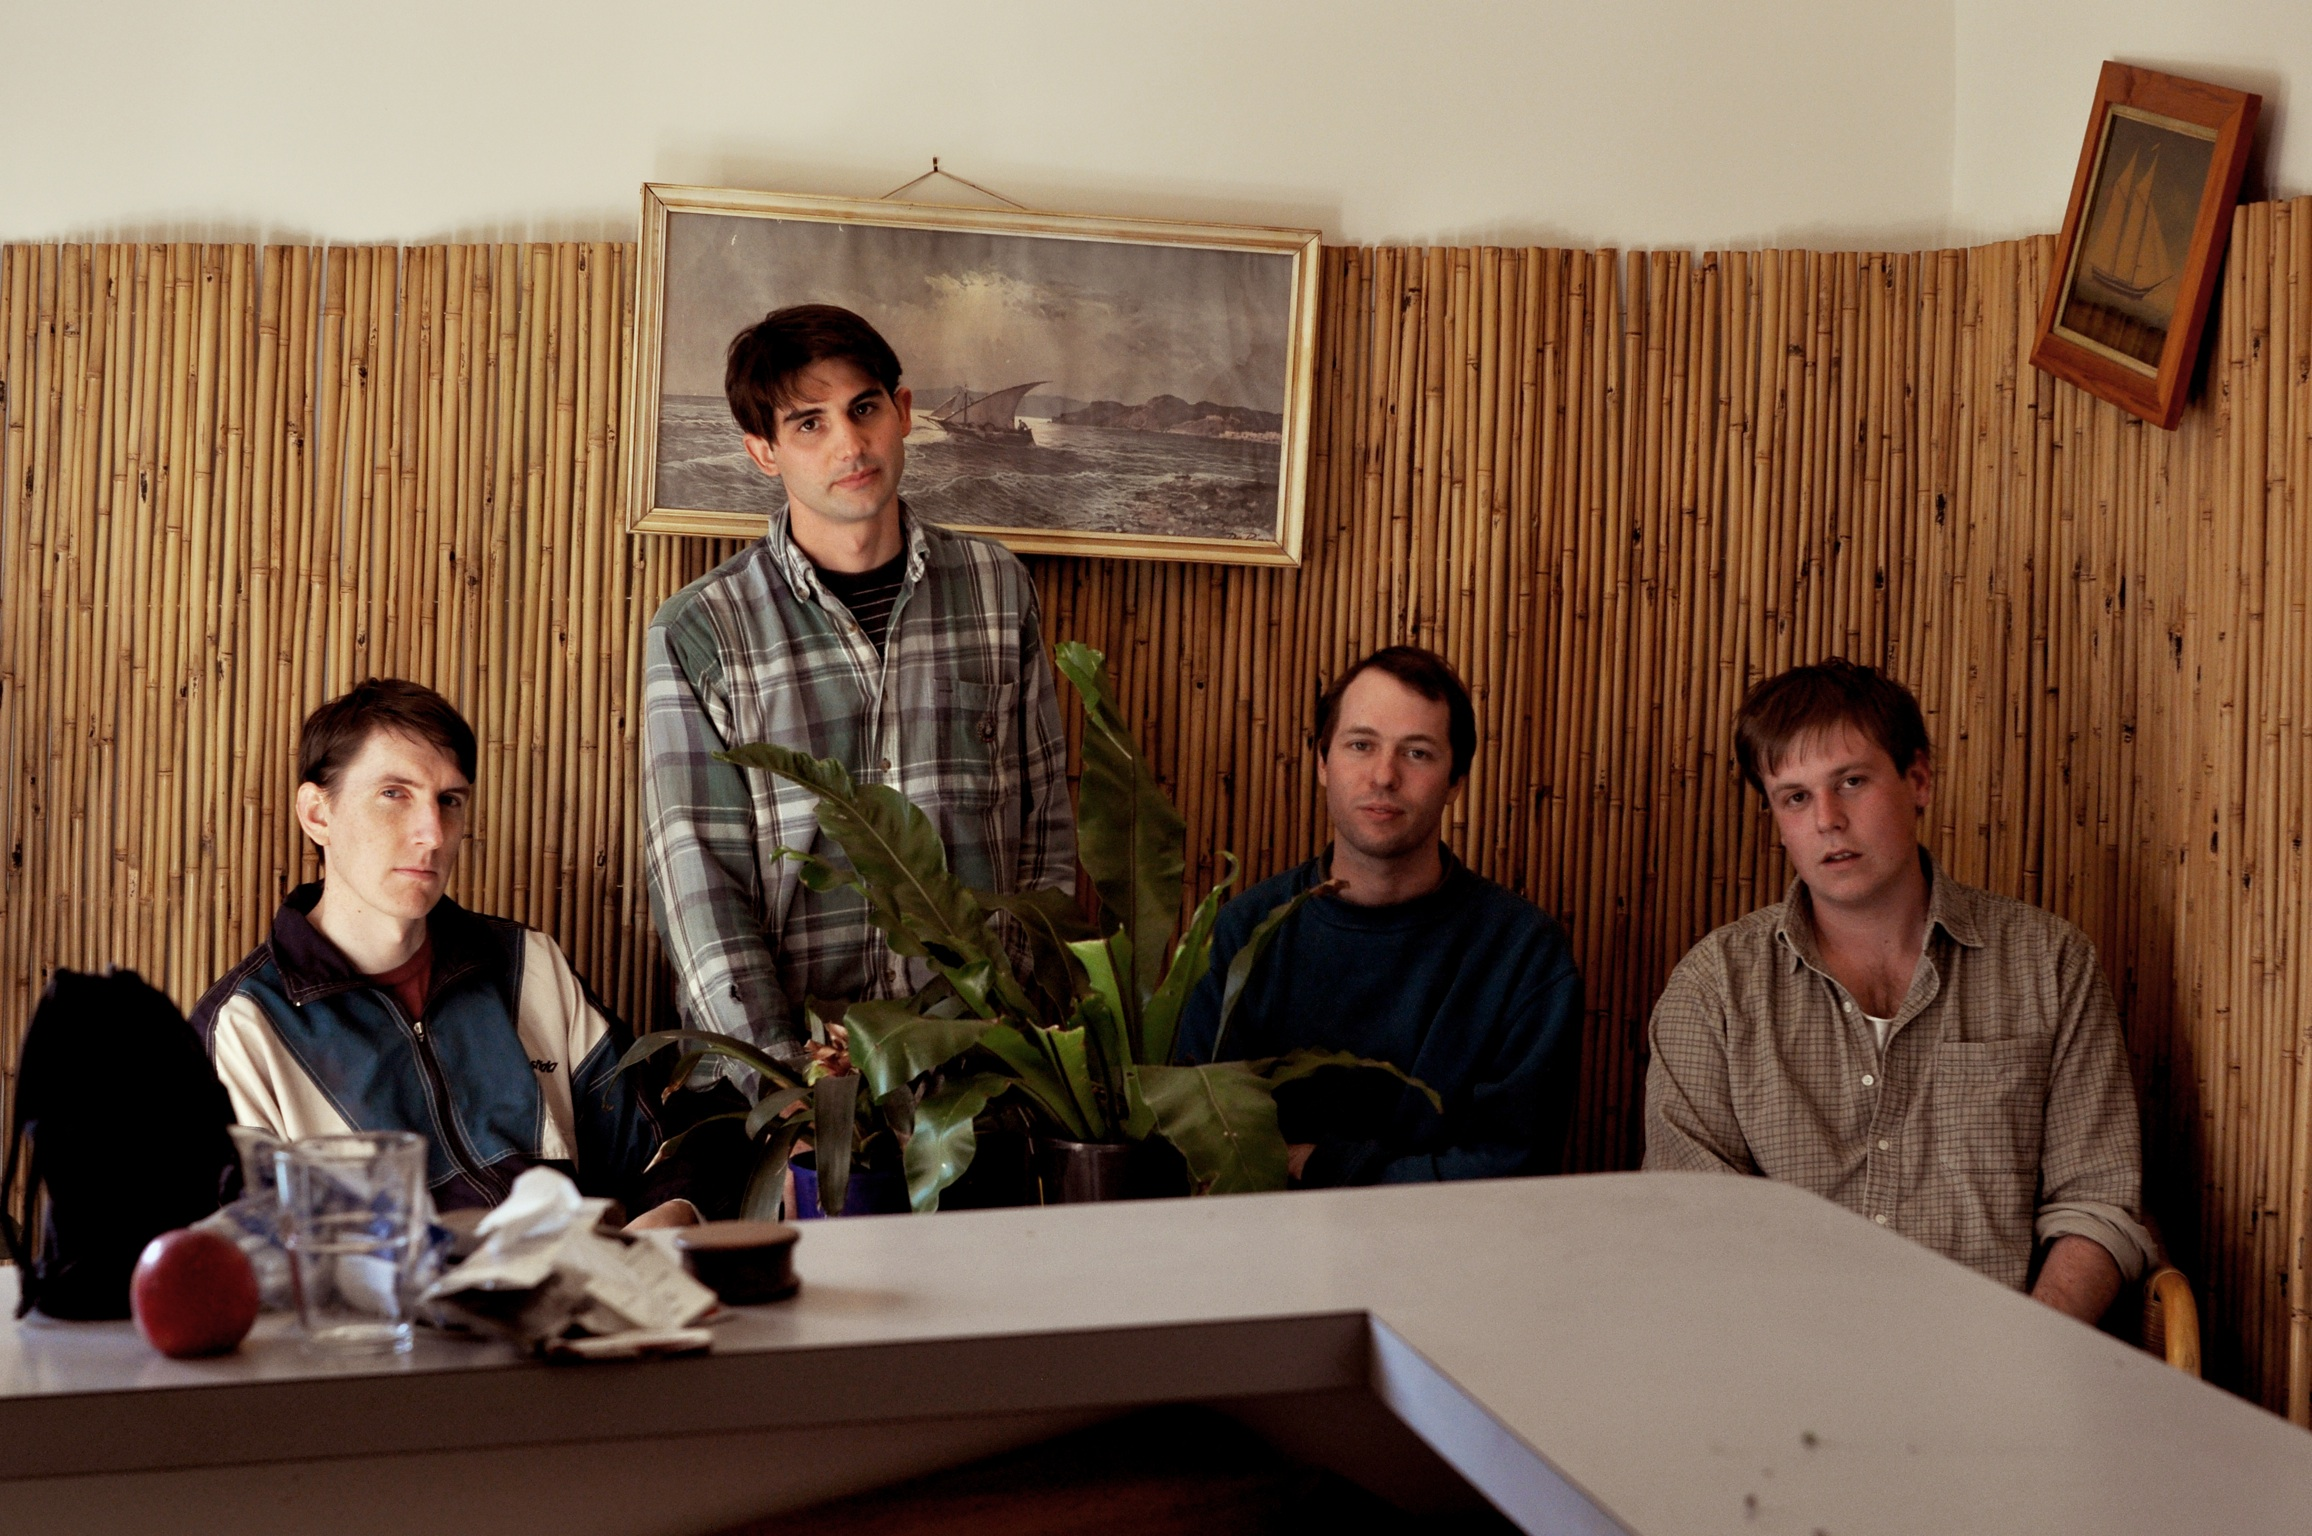 VIDEO PREMIERE: Full Ugly – Hanging Around